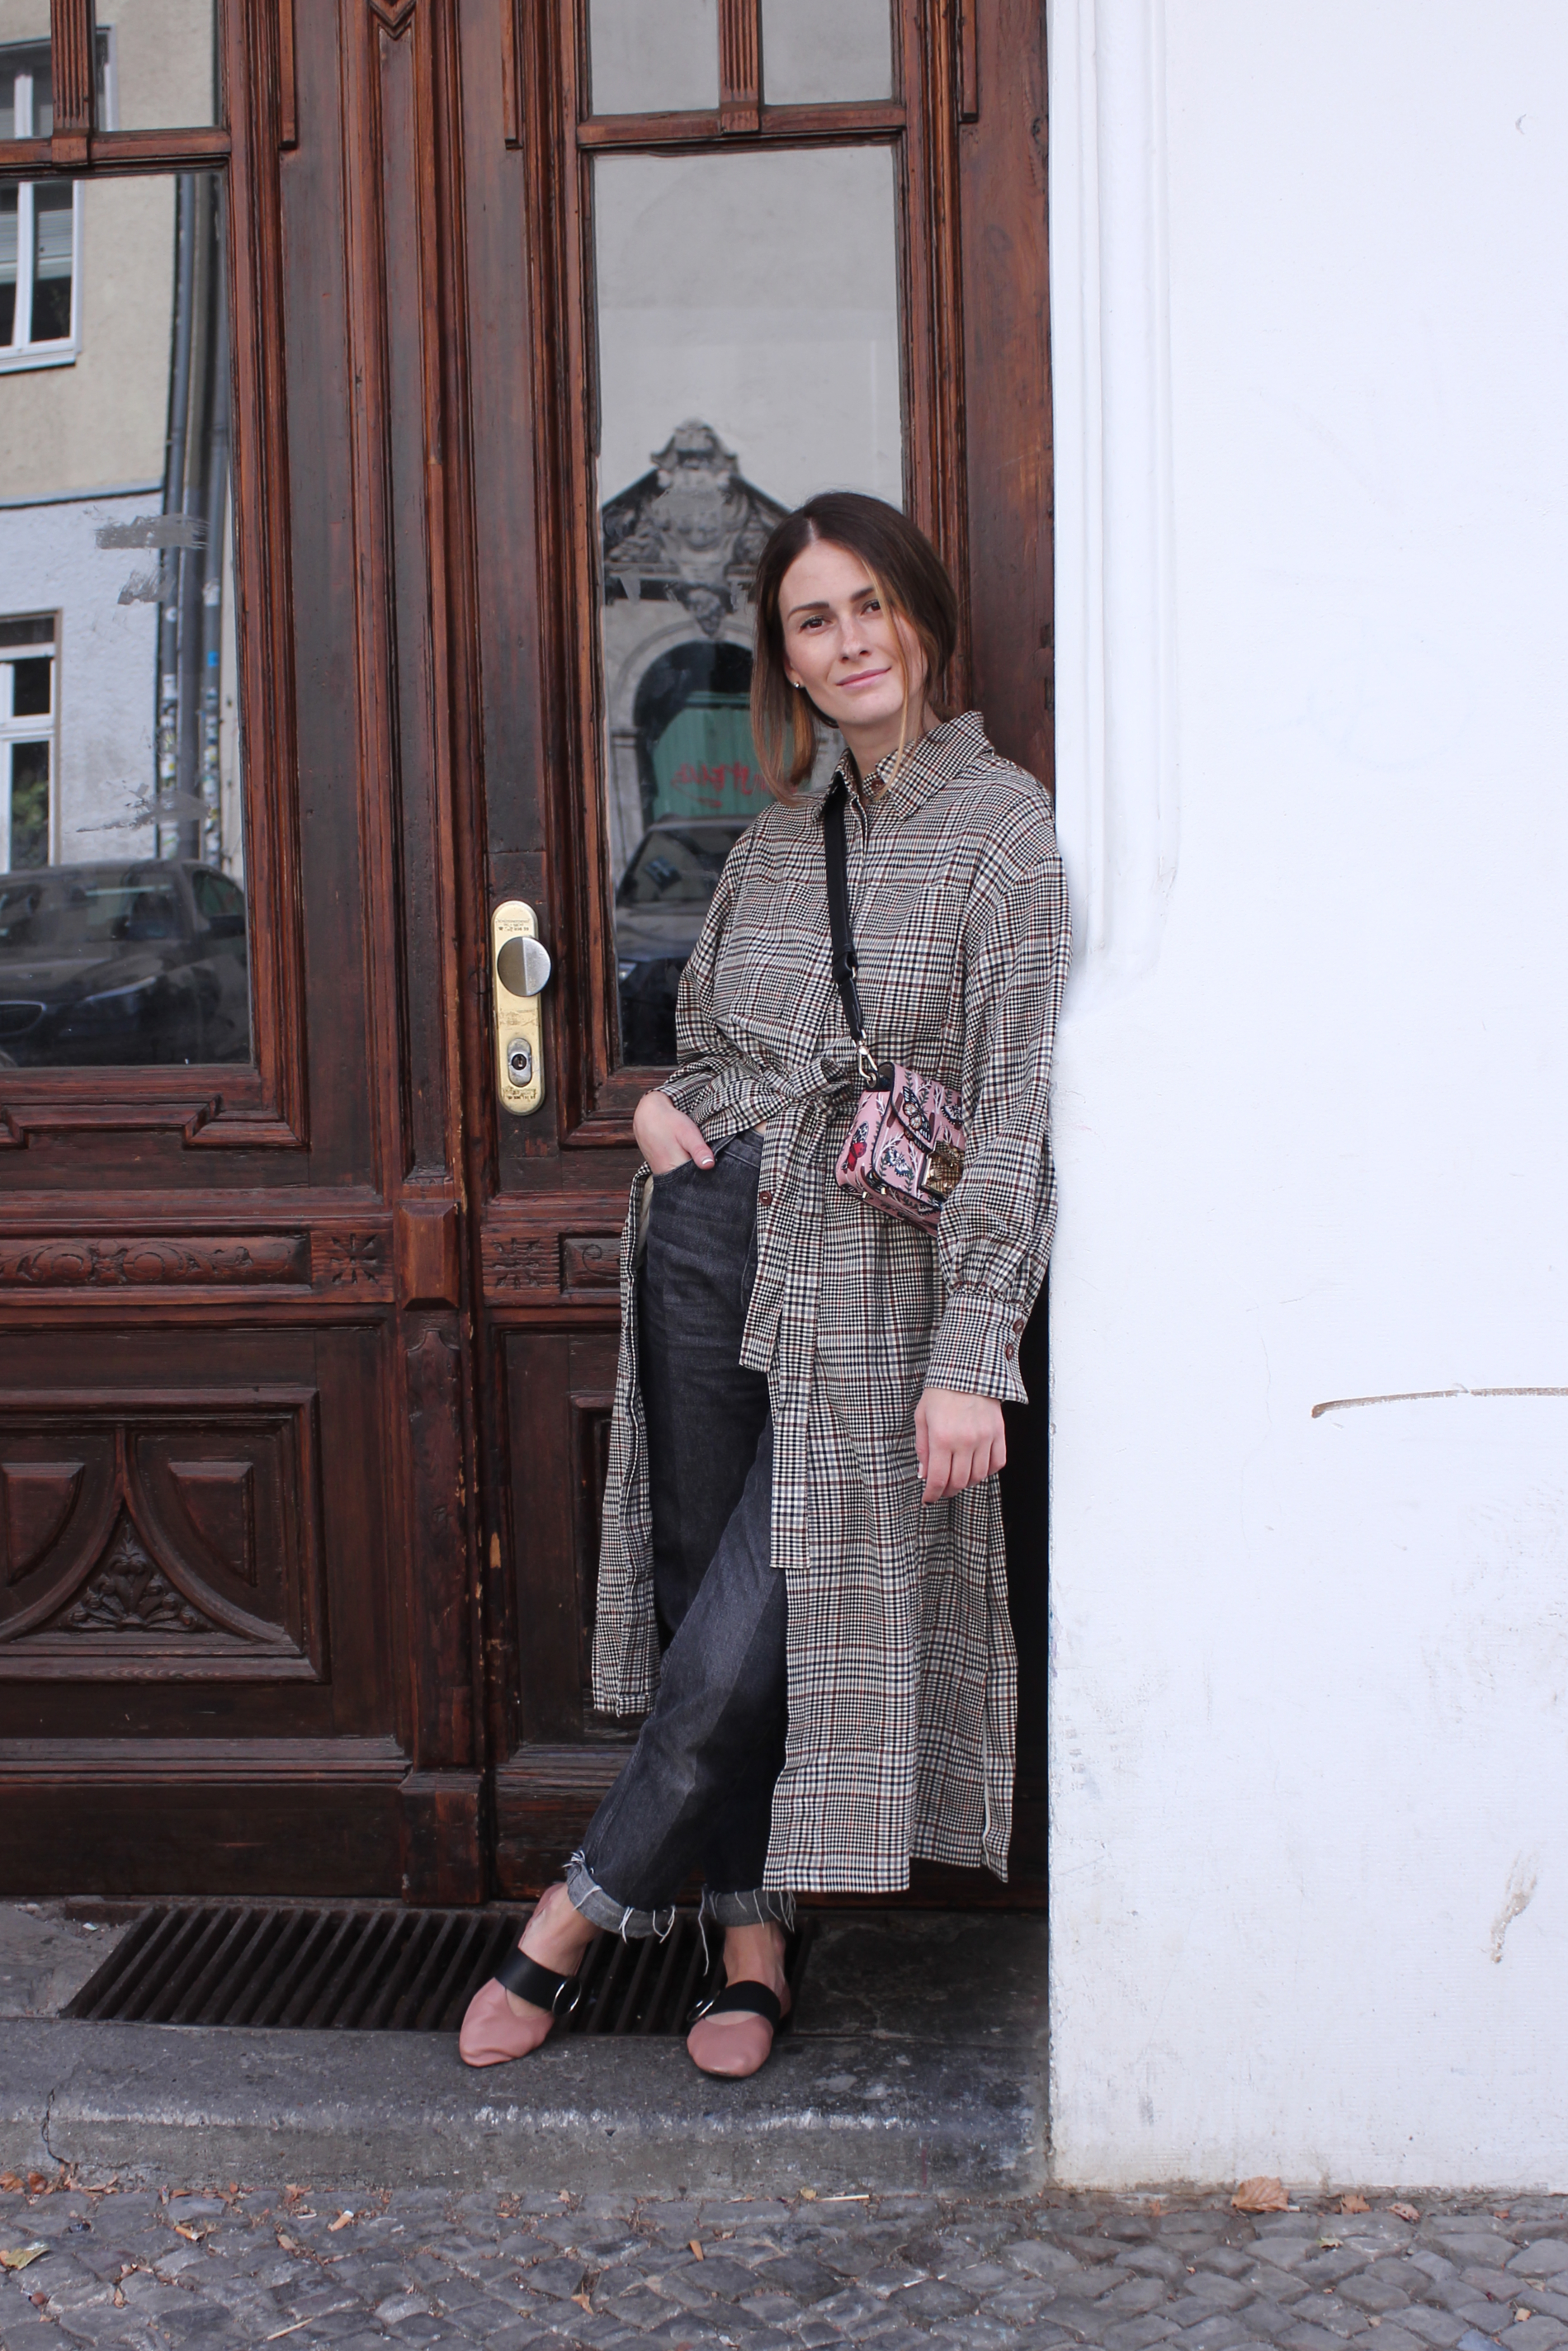 annaporter-checked-coat-hm-outfit-fashionblogger.jpg